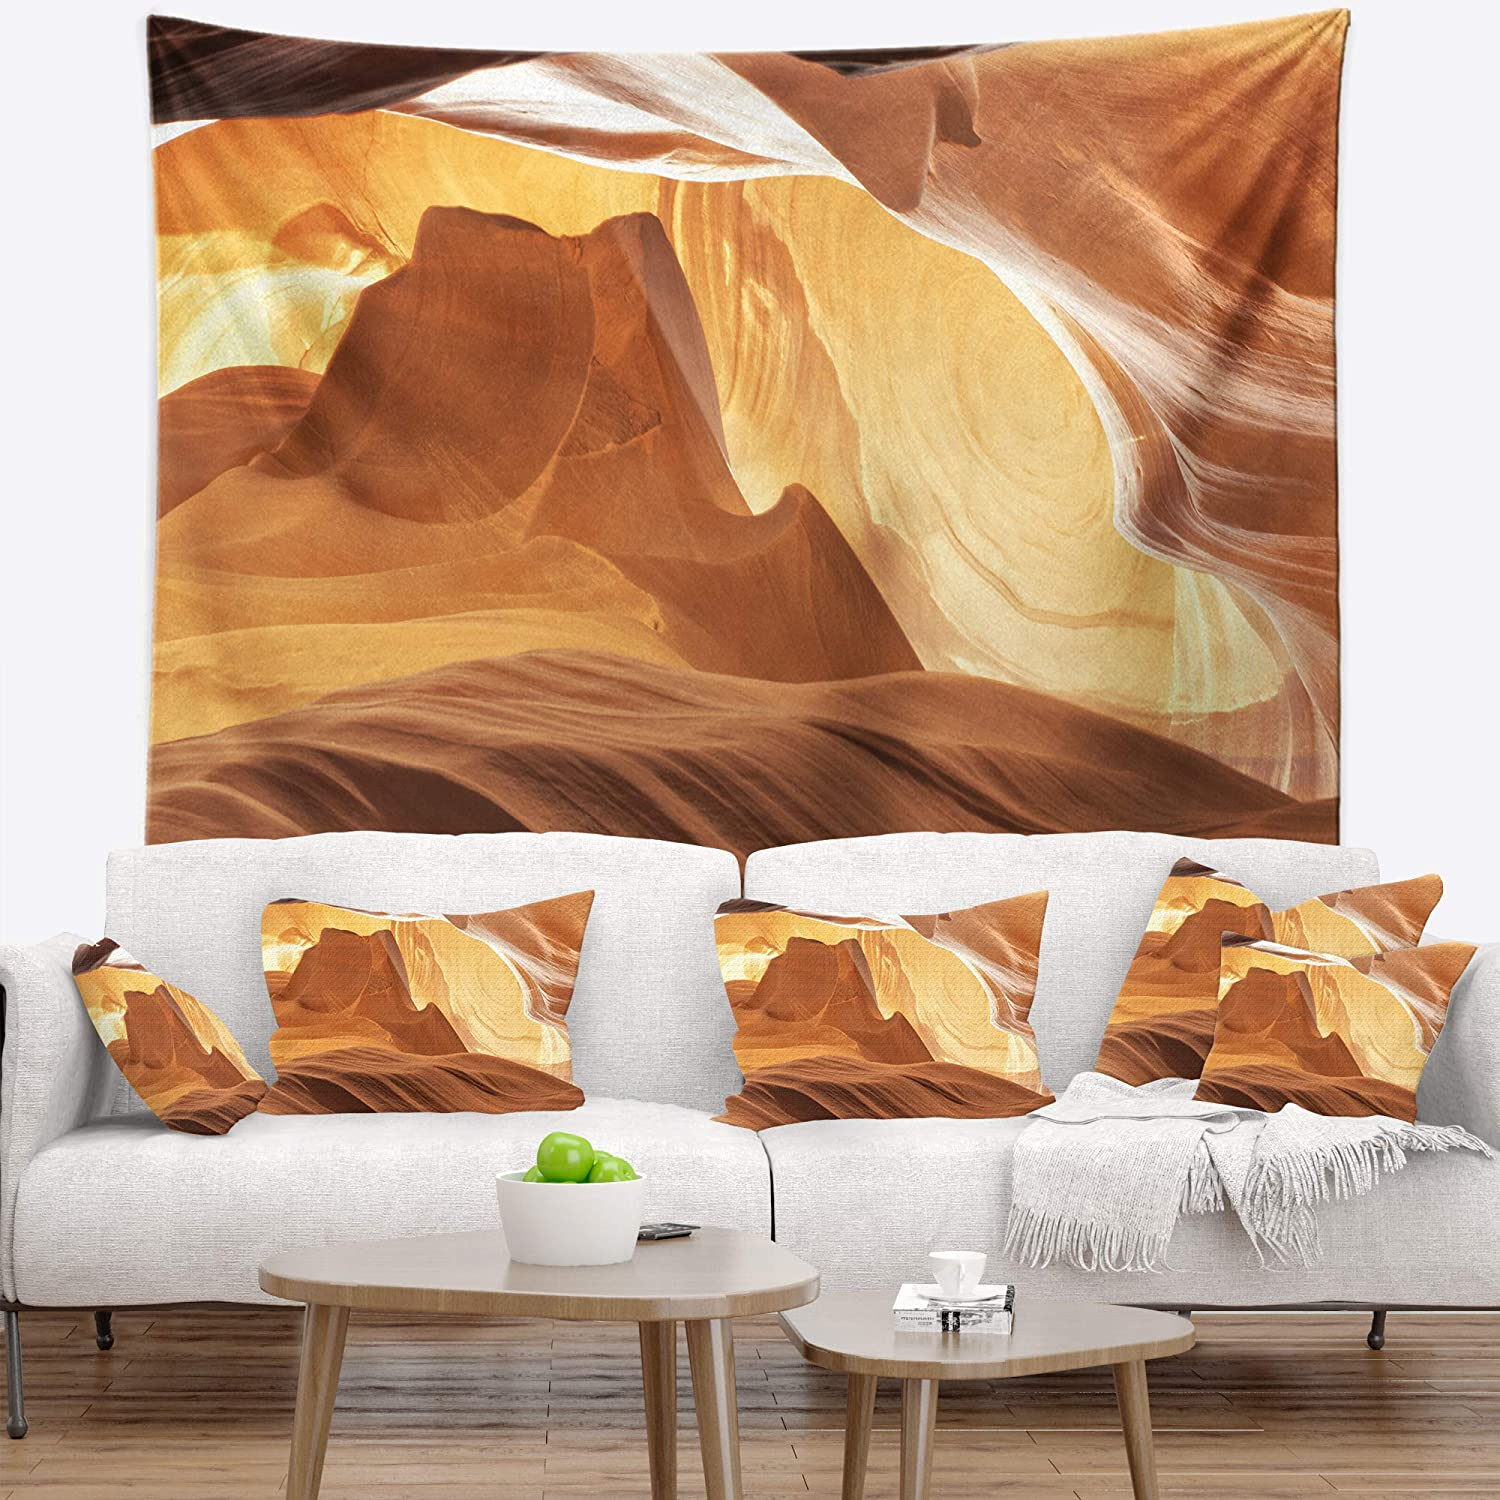 Designart TAP8778-80-68 Antelope Canyon with Light Rays Landscape Photography Blanket D/écor Art for Home and Office Wall Tapestry 80 in x Large x 68 in